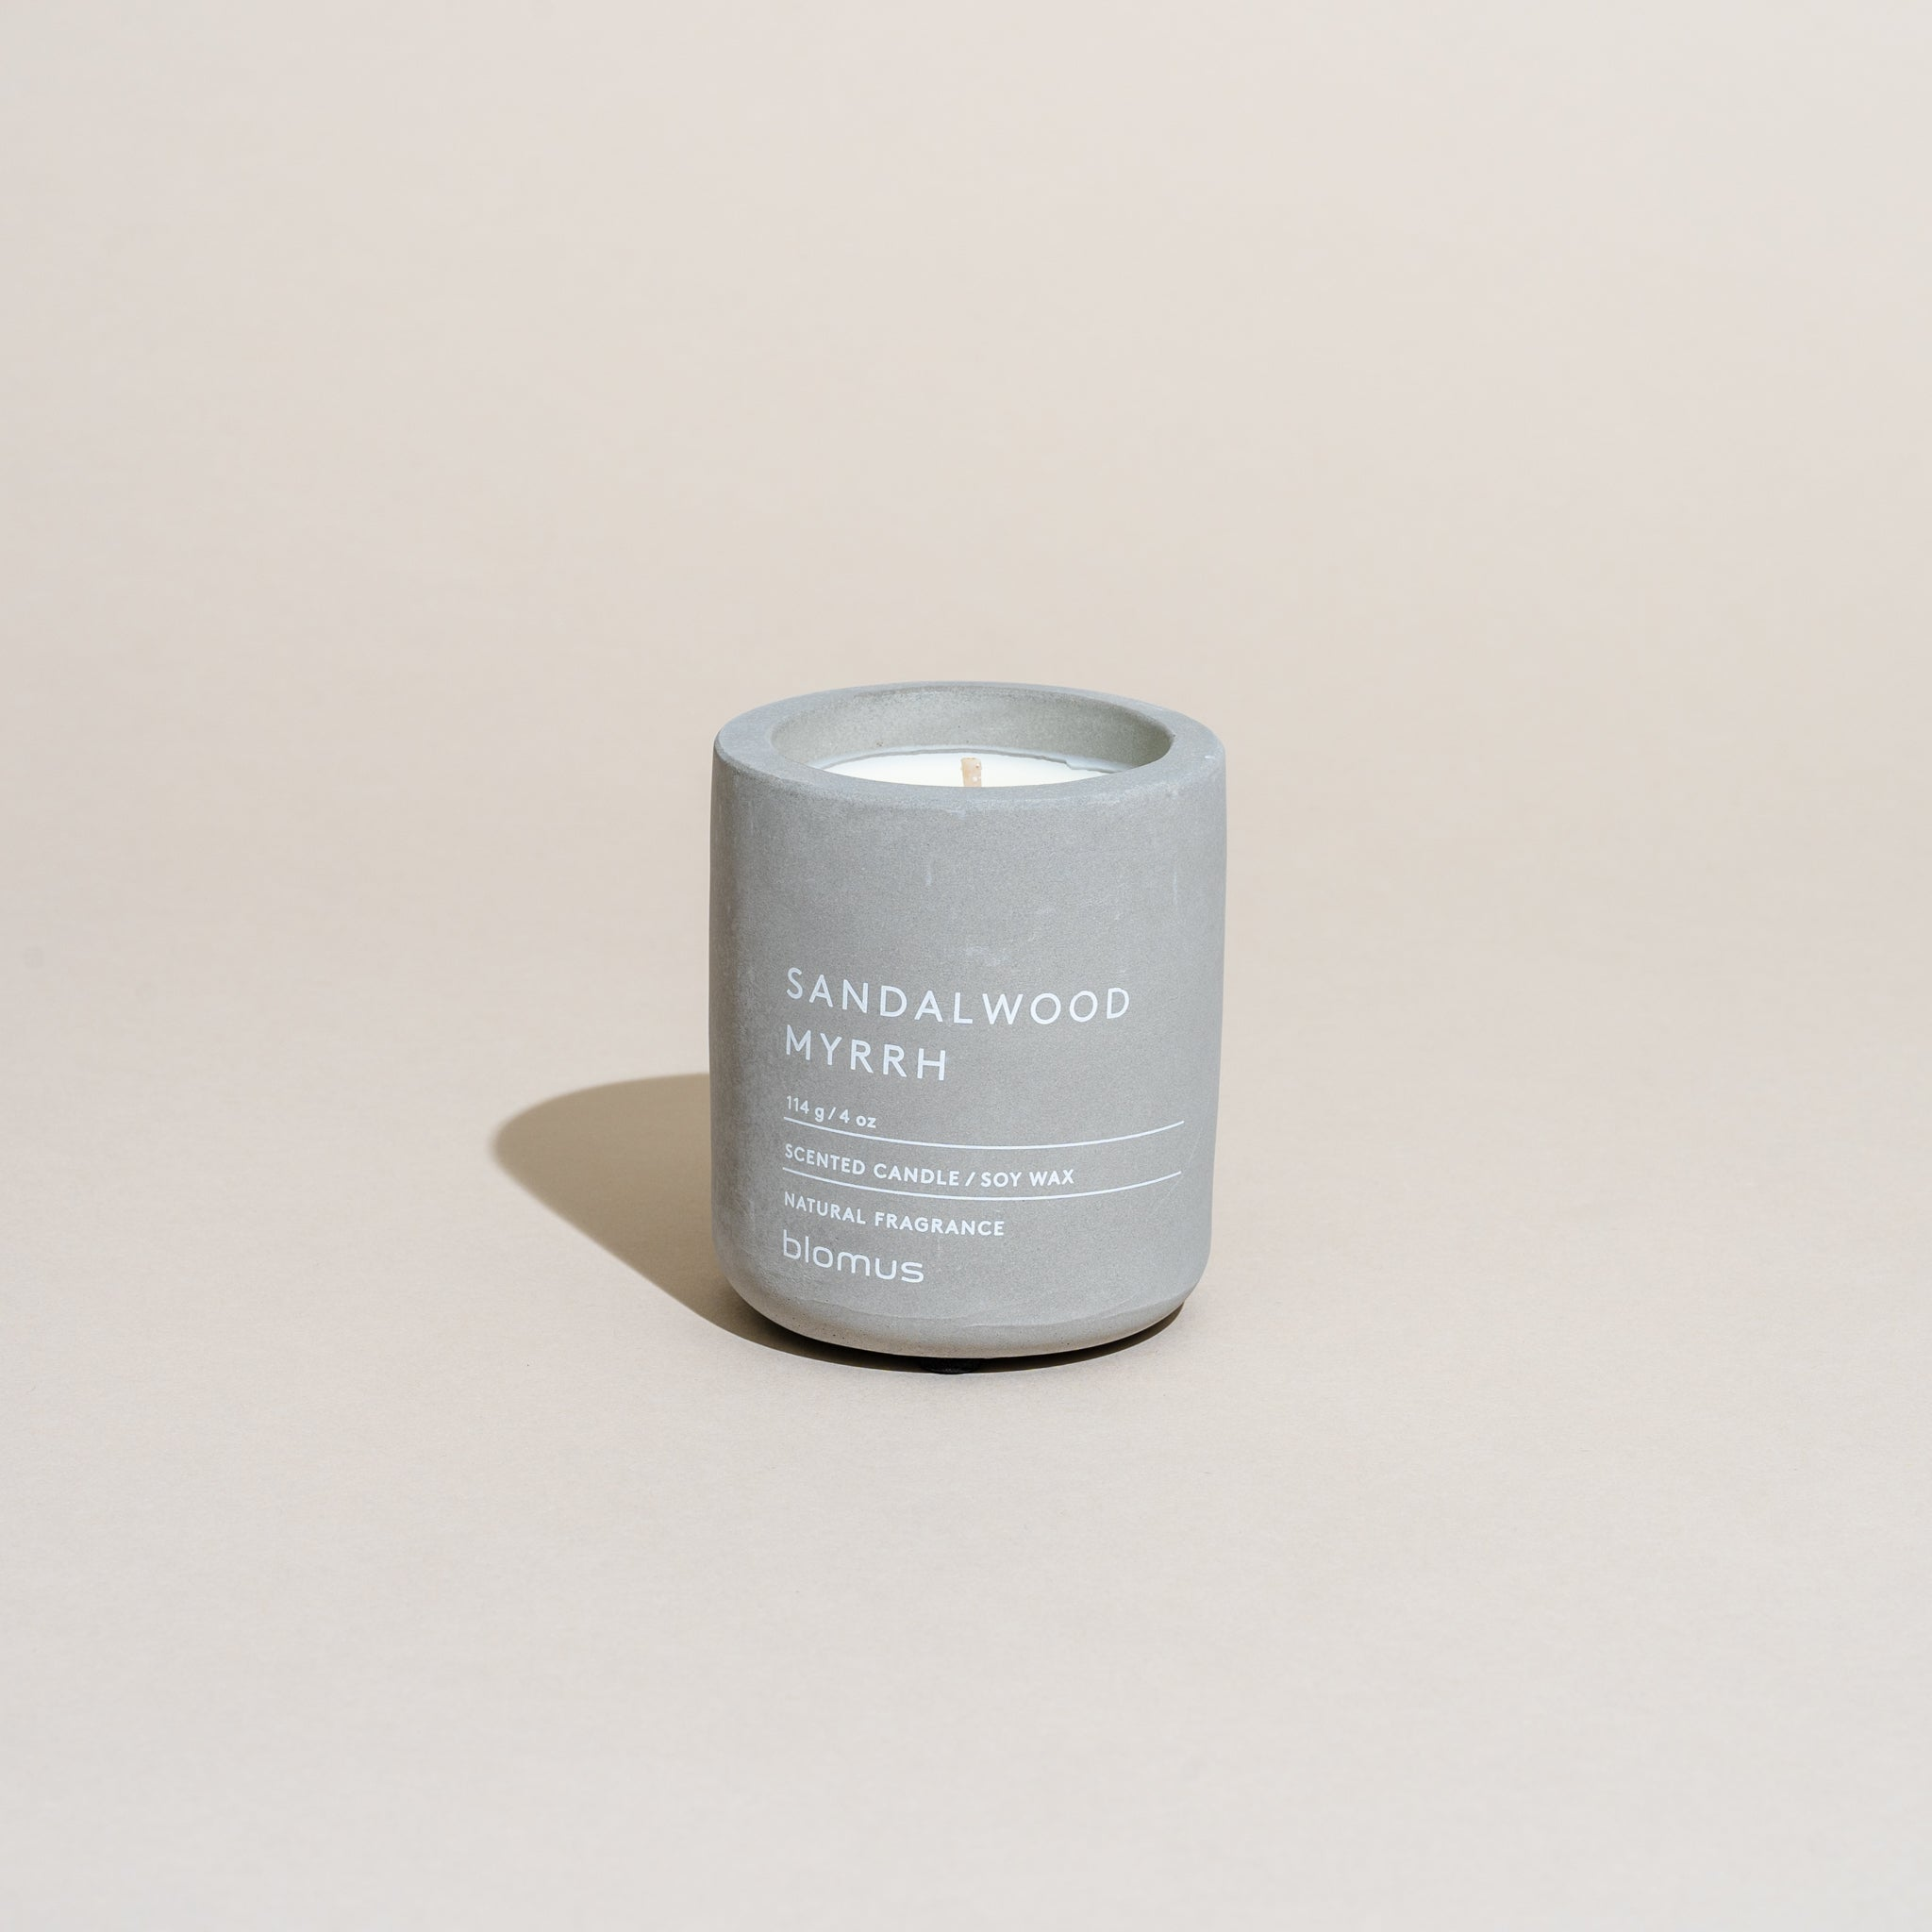 Concrete Candle (Sandalwood Myrrh)